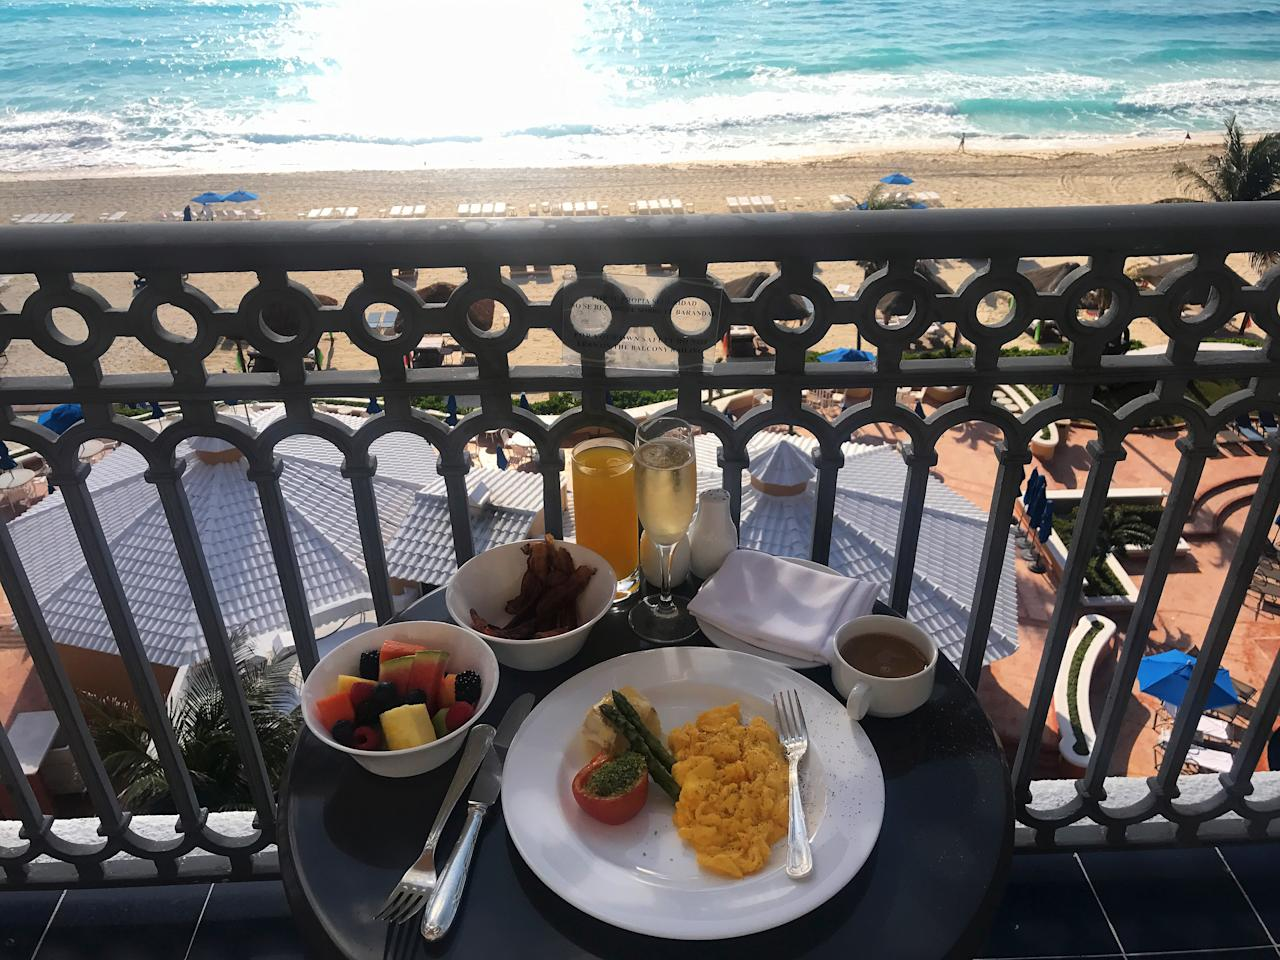 """What did the girls eat to prep for their epic beach day? Eggs, bacon, fruit and more,""""We had to make sure to order lots of food for a full day in the sun,"""" Zuri shares."""